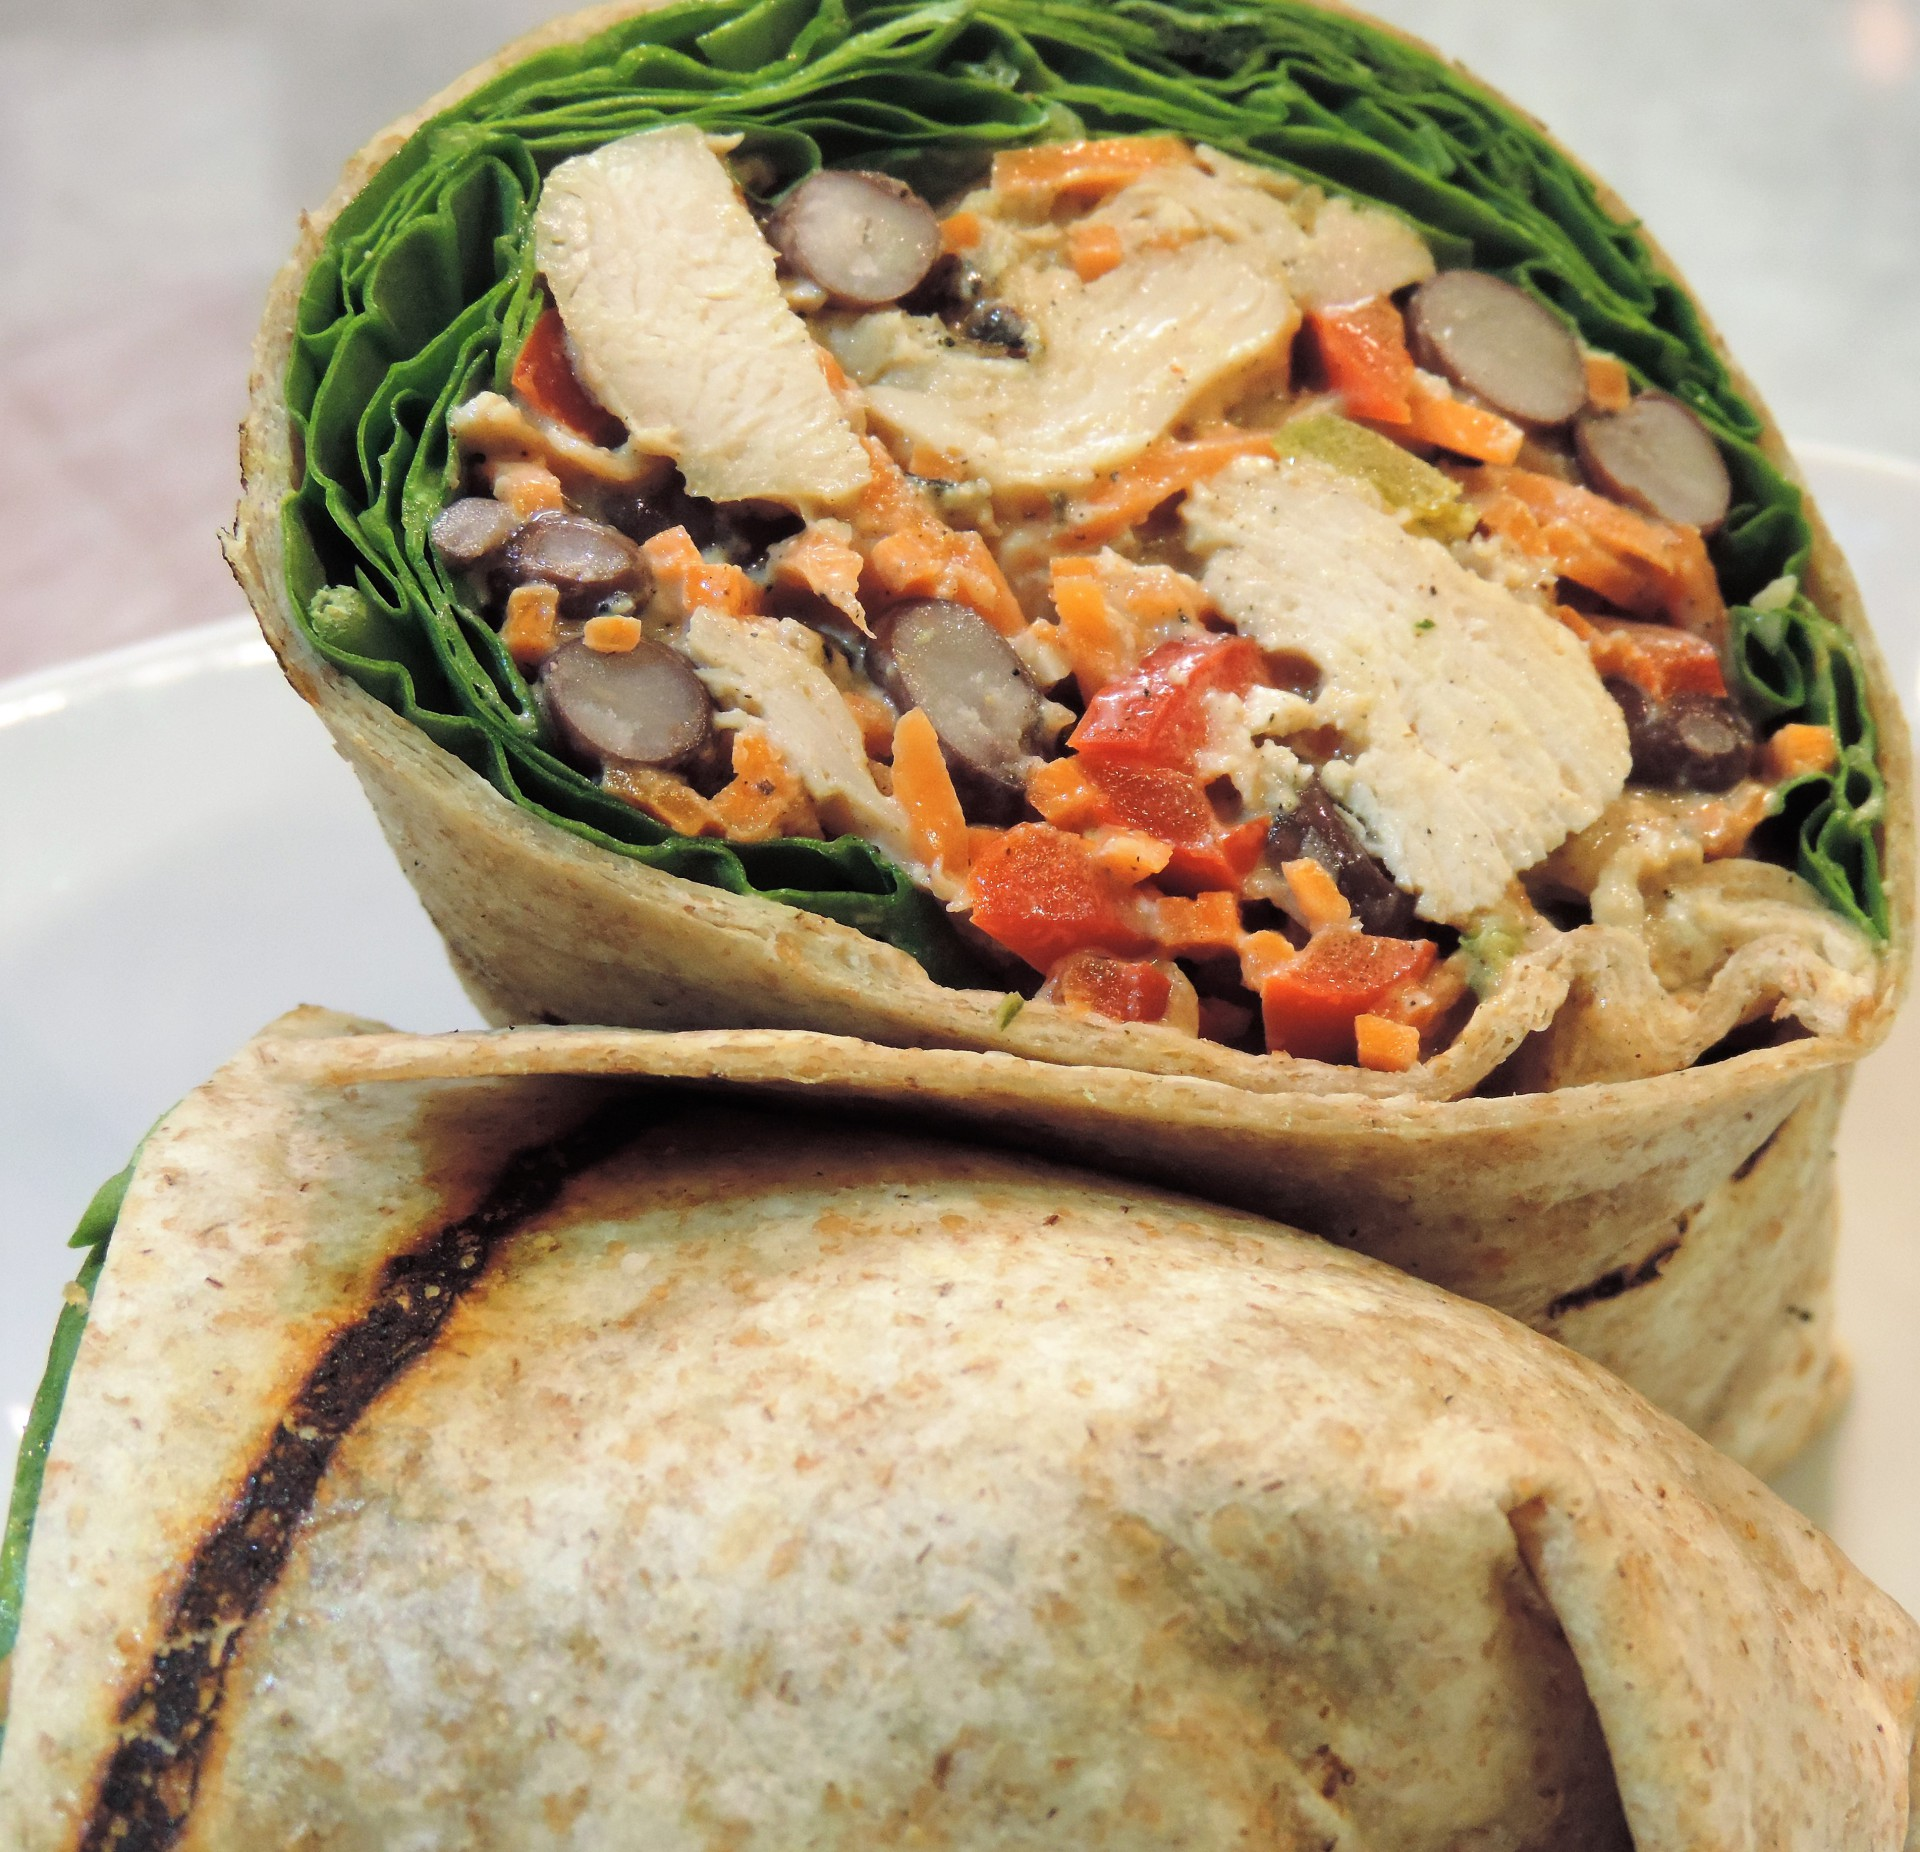 The Jerk (Wrap)